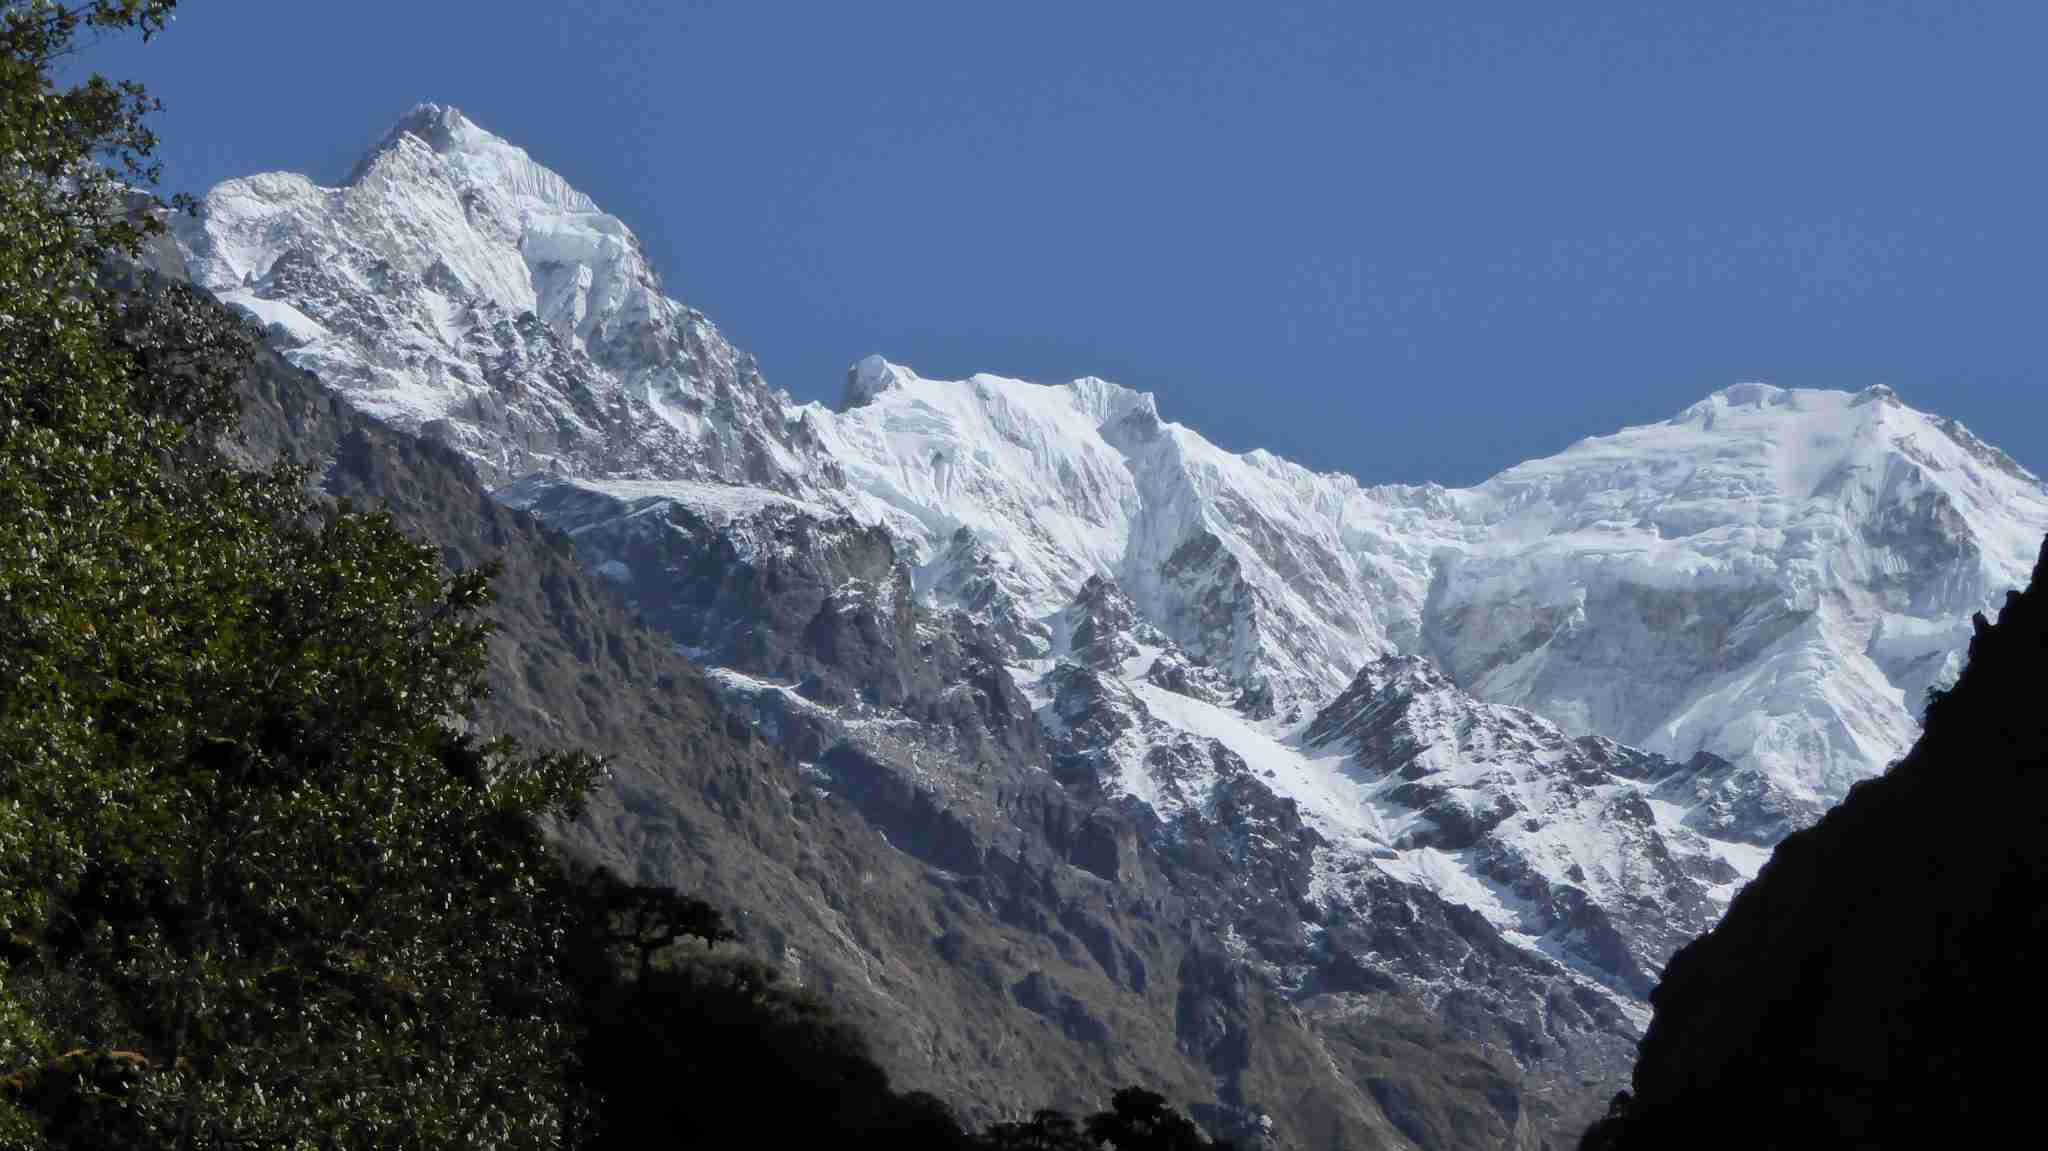 On the left the Langtang Ri, the highest peak of the area